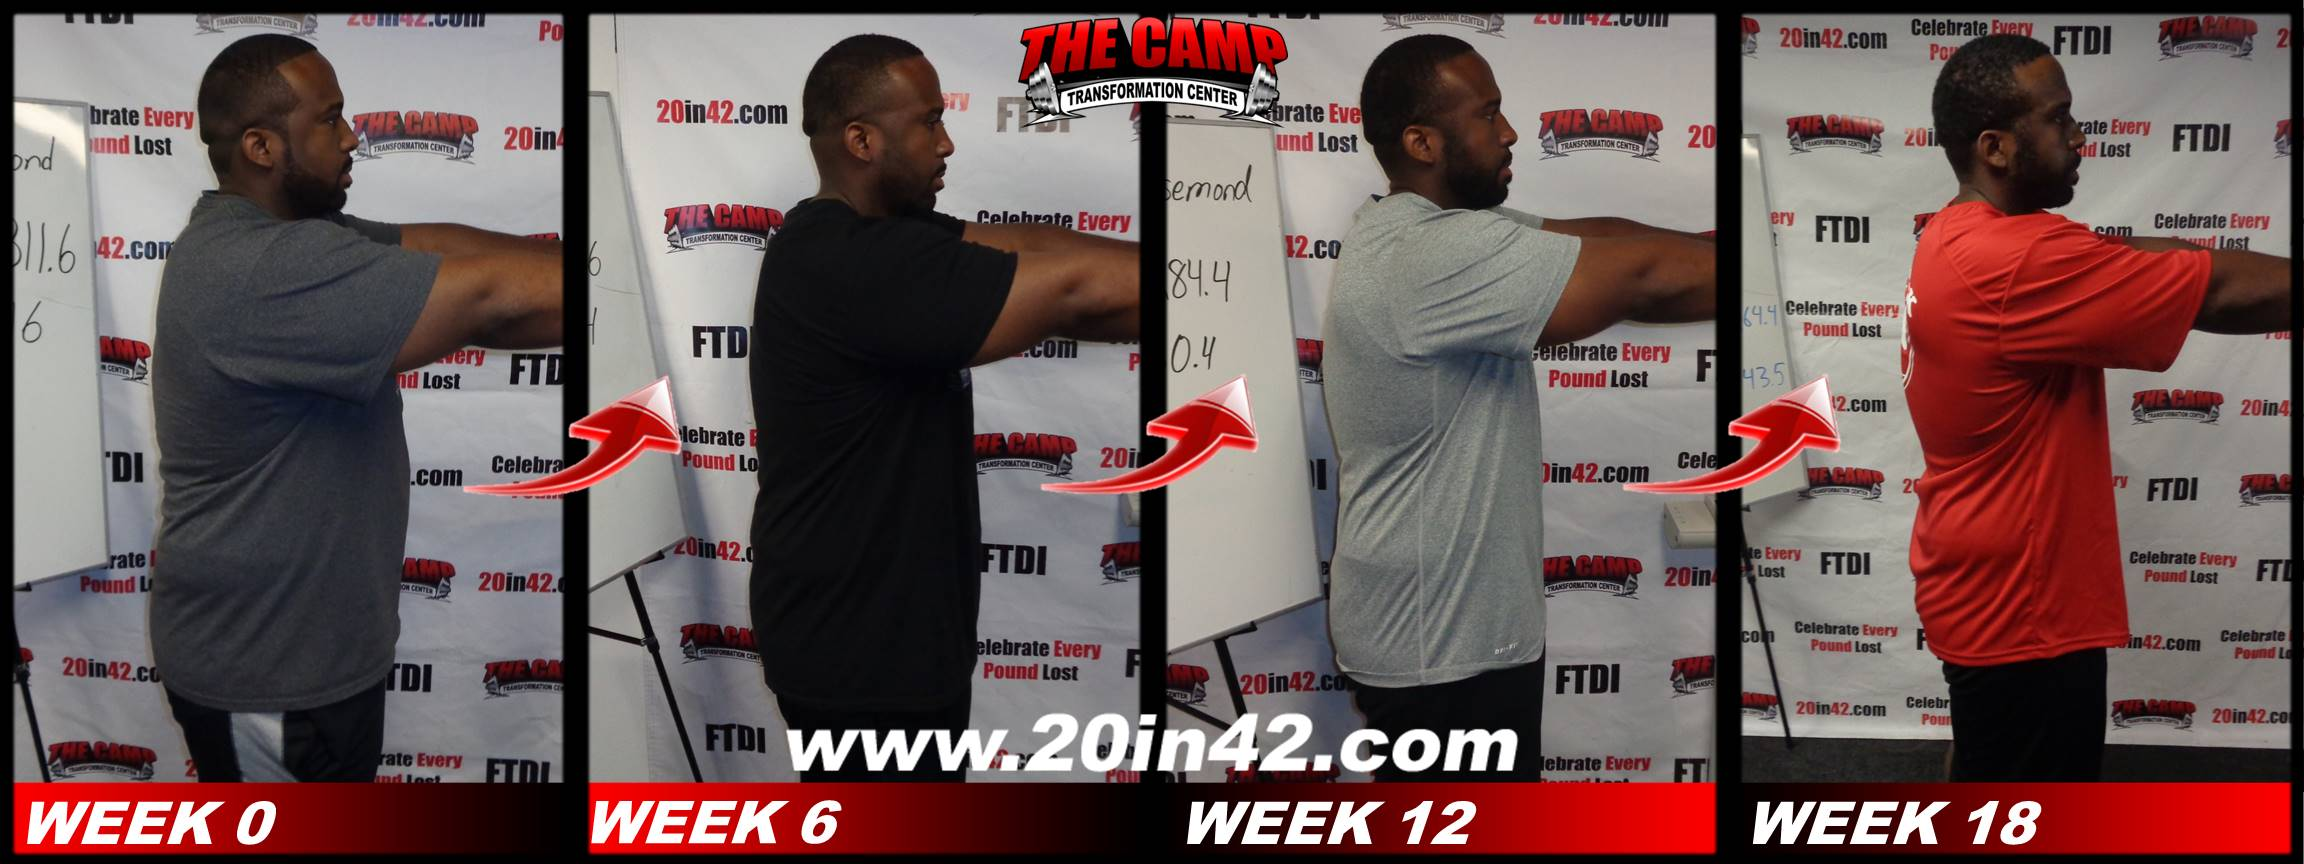 profile view in 4 images of the same man as in previous picture showing his weight loss after 6 weeks, 12 weeks, and 18 weeks in the program